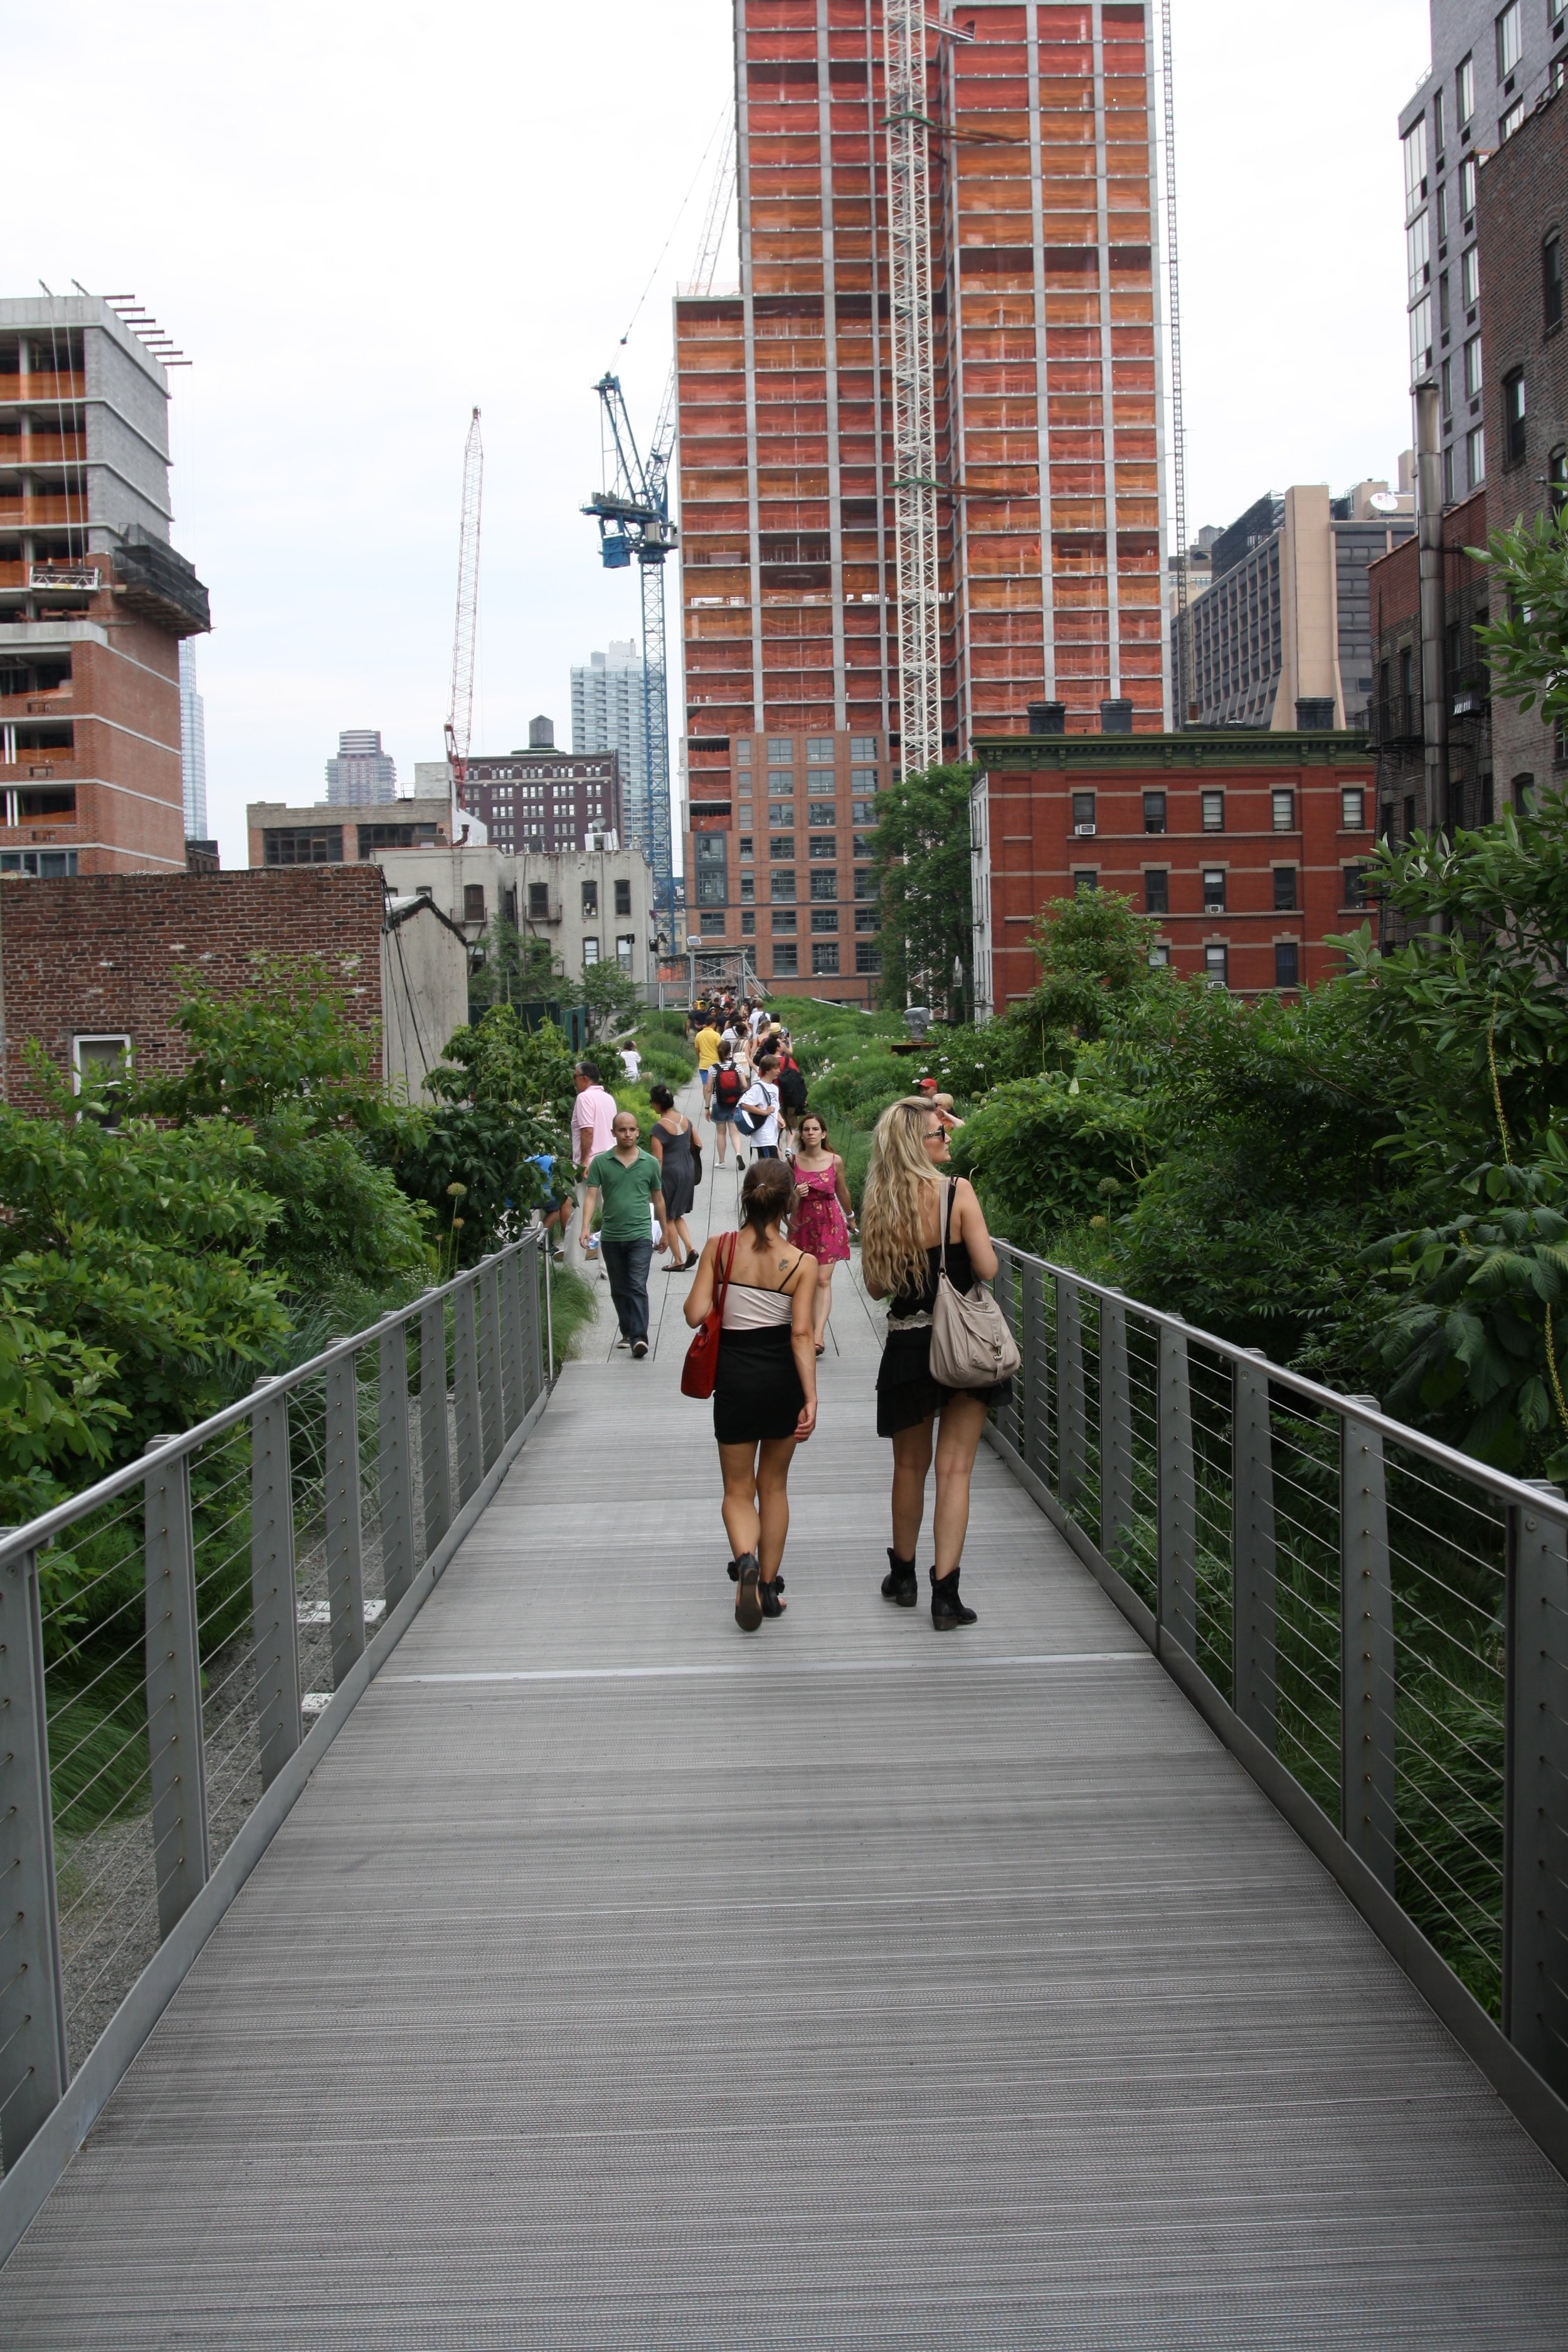 The High Line is one of the most iconic New York City outdoor sights. Don't miss it!